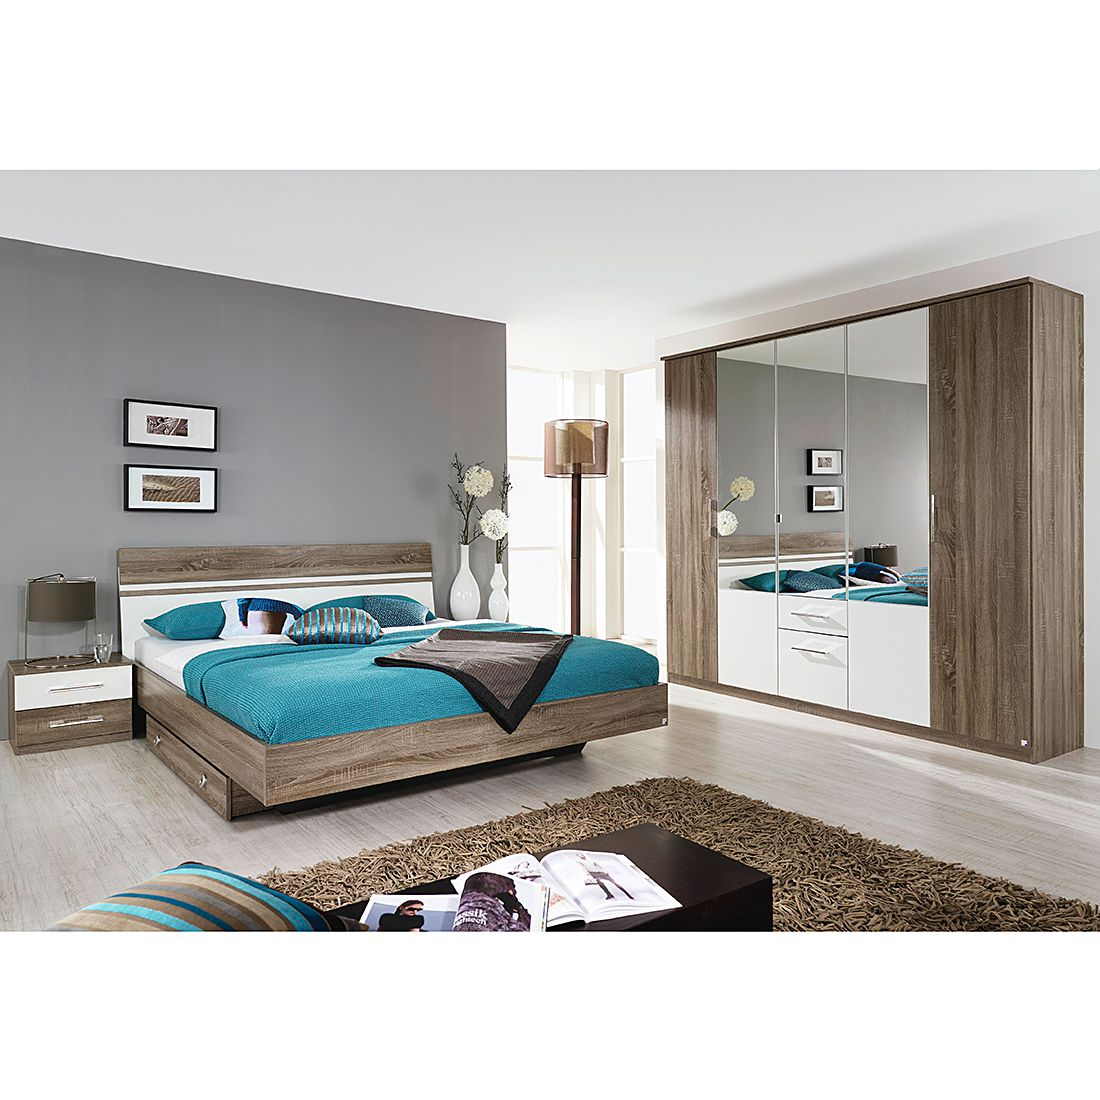 schlafzimmerset arles 4 teilig mit dreht ren kombischrank eiche havanna alpinwei mit bett. Black Bedroom Furniture Sets. Home Design Ideas